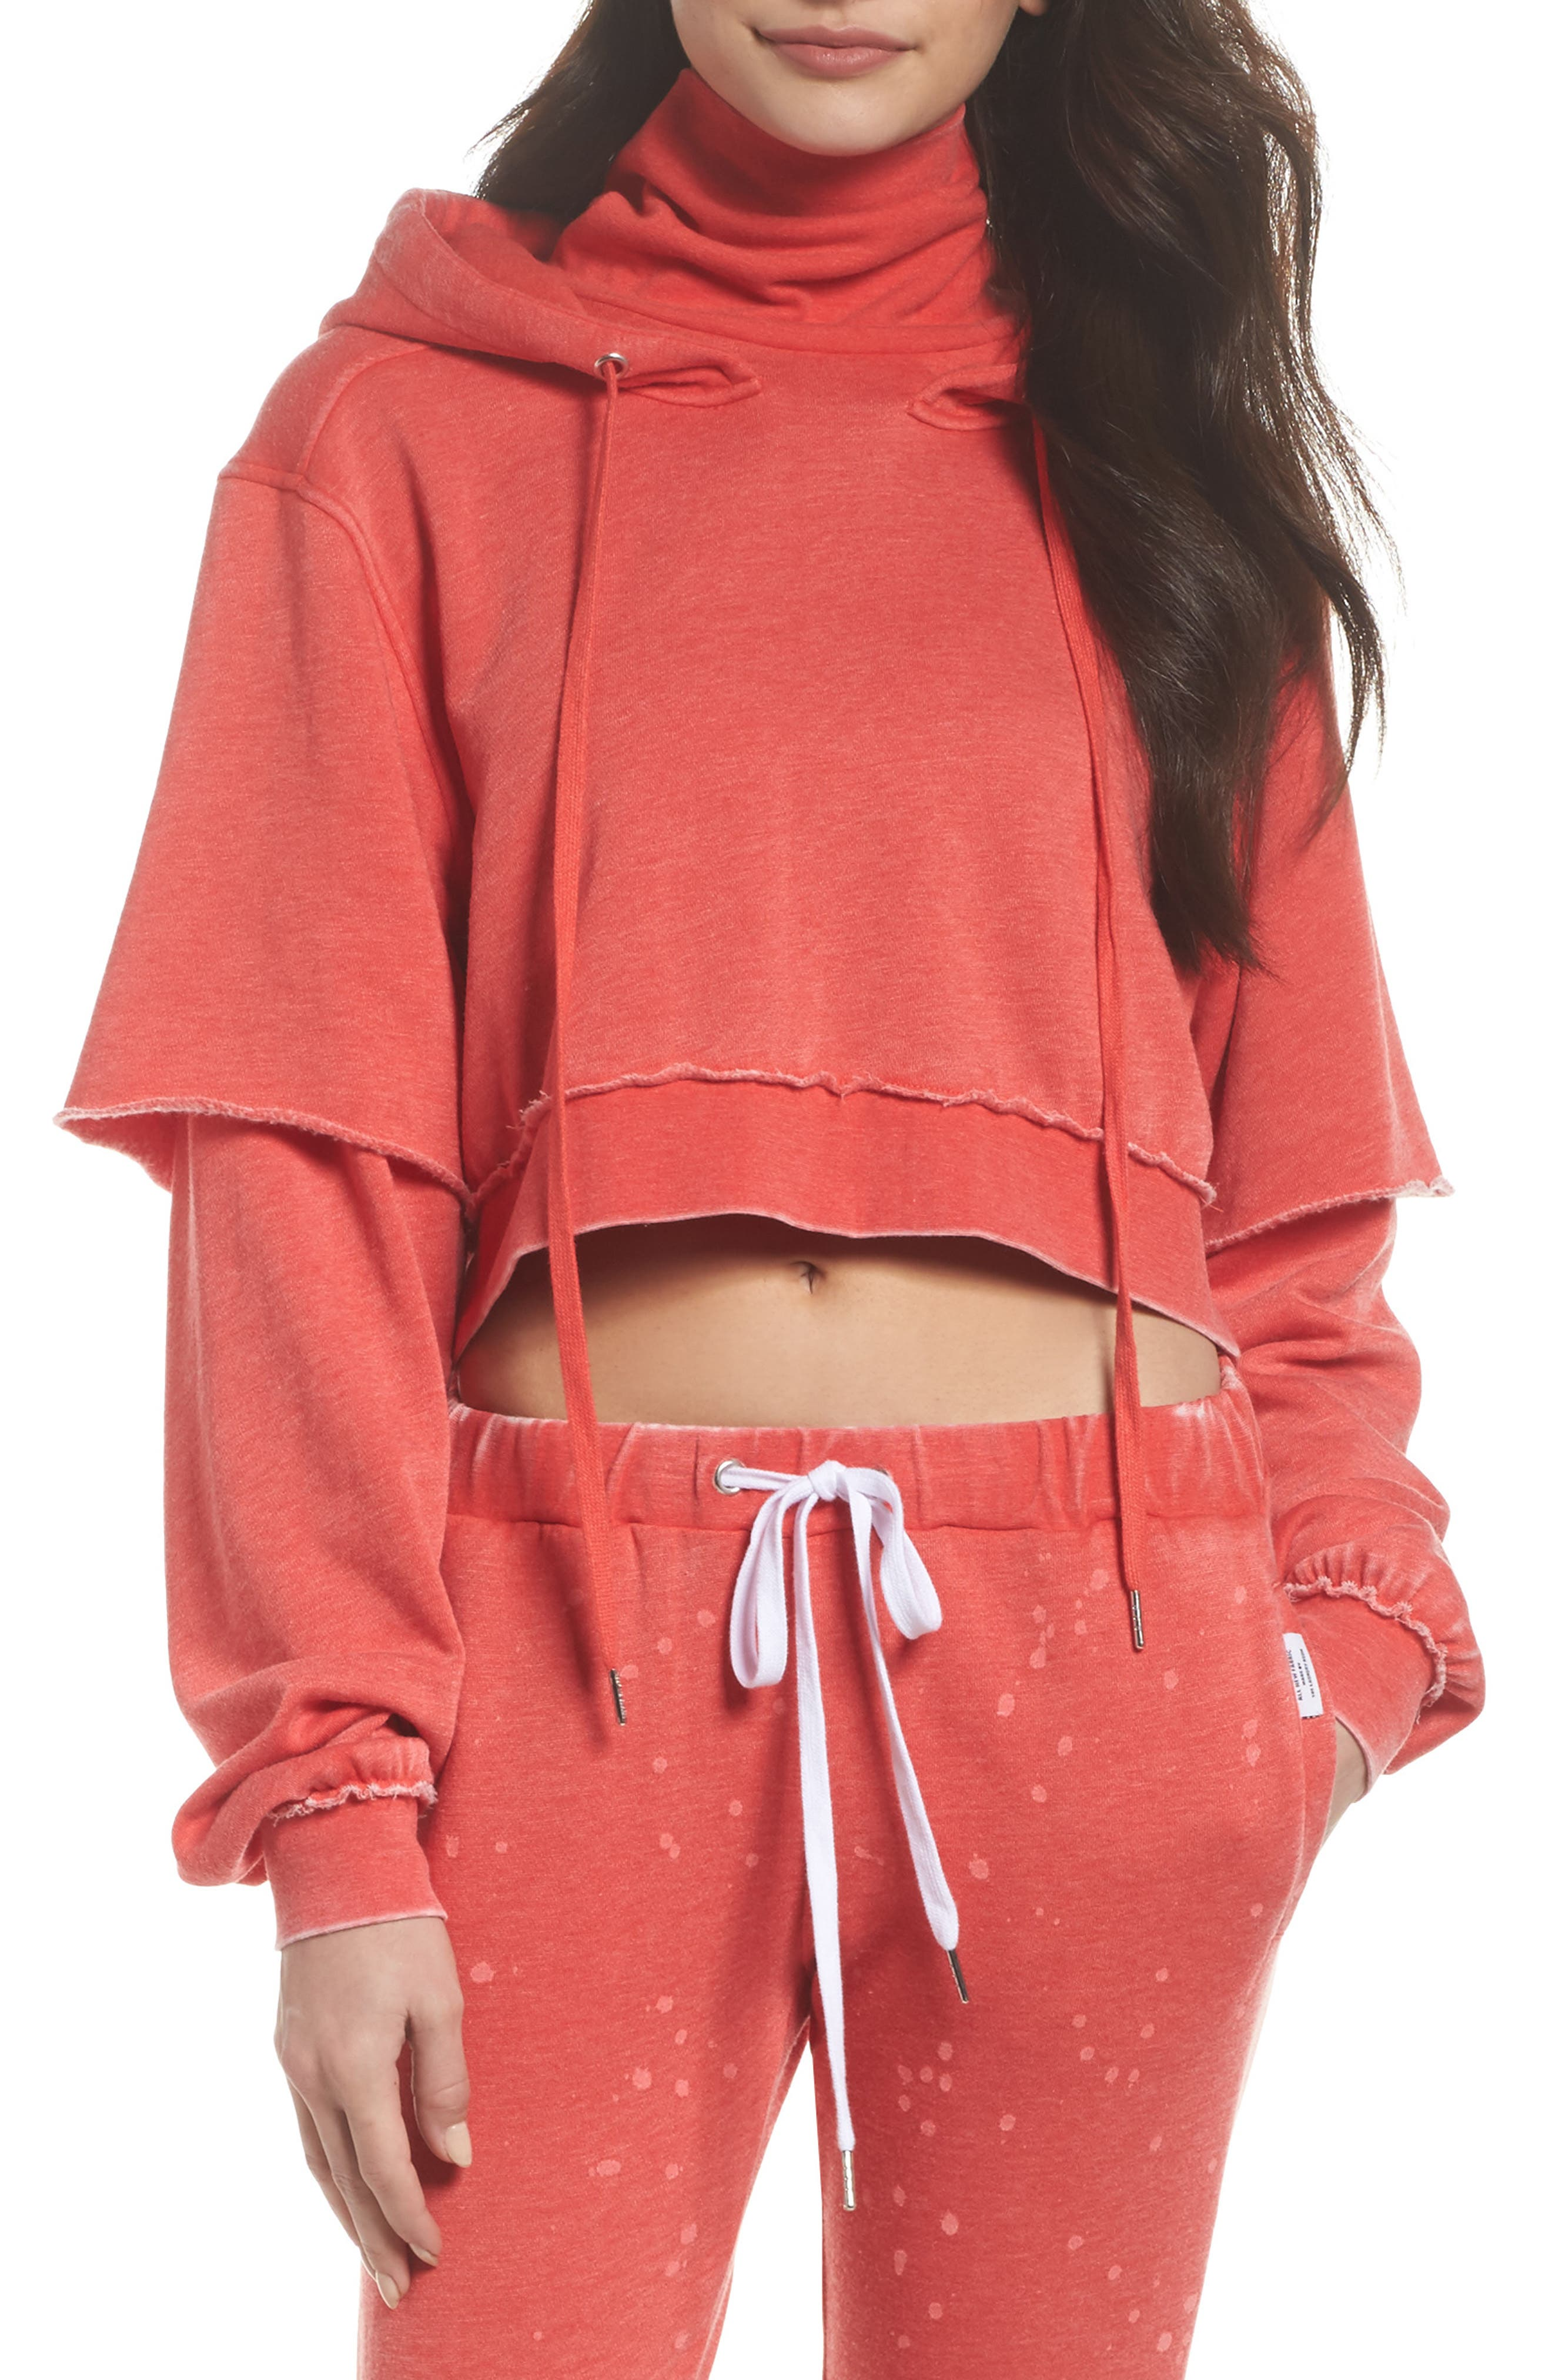 Good Hood Crop Hoodie,                             Main thumbnail 1, color,                             Love Red/ White